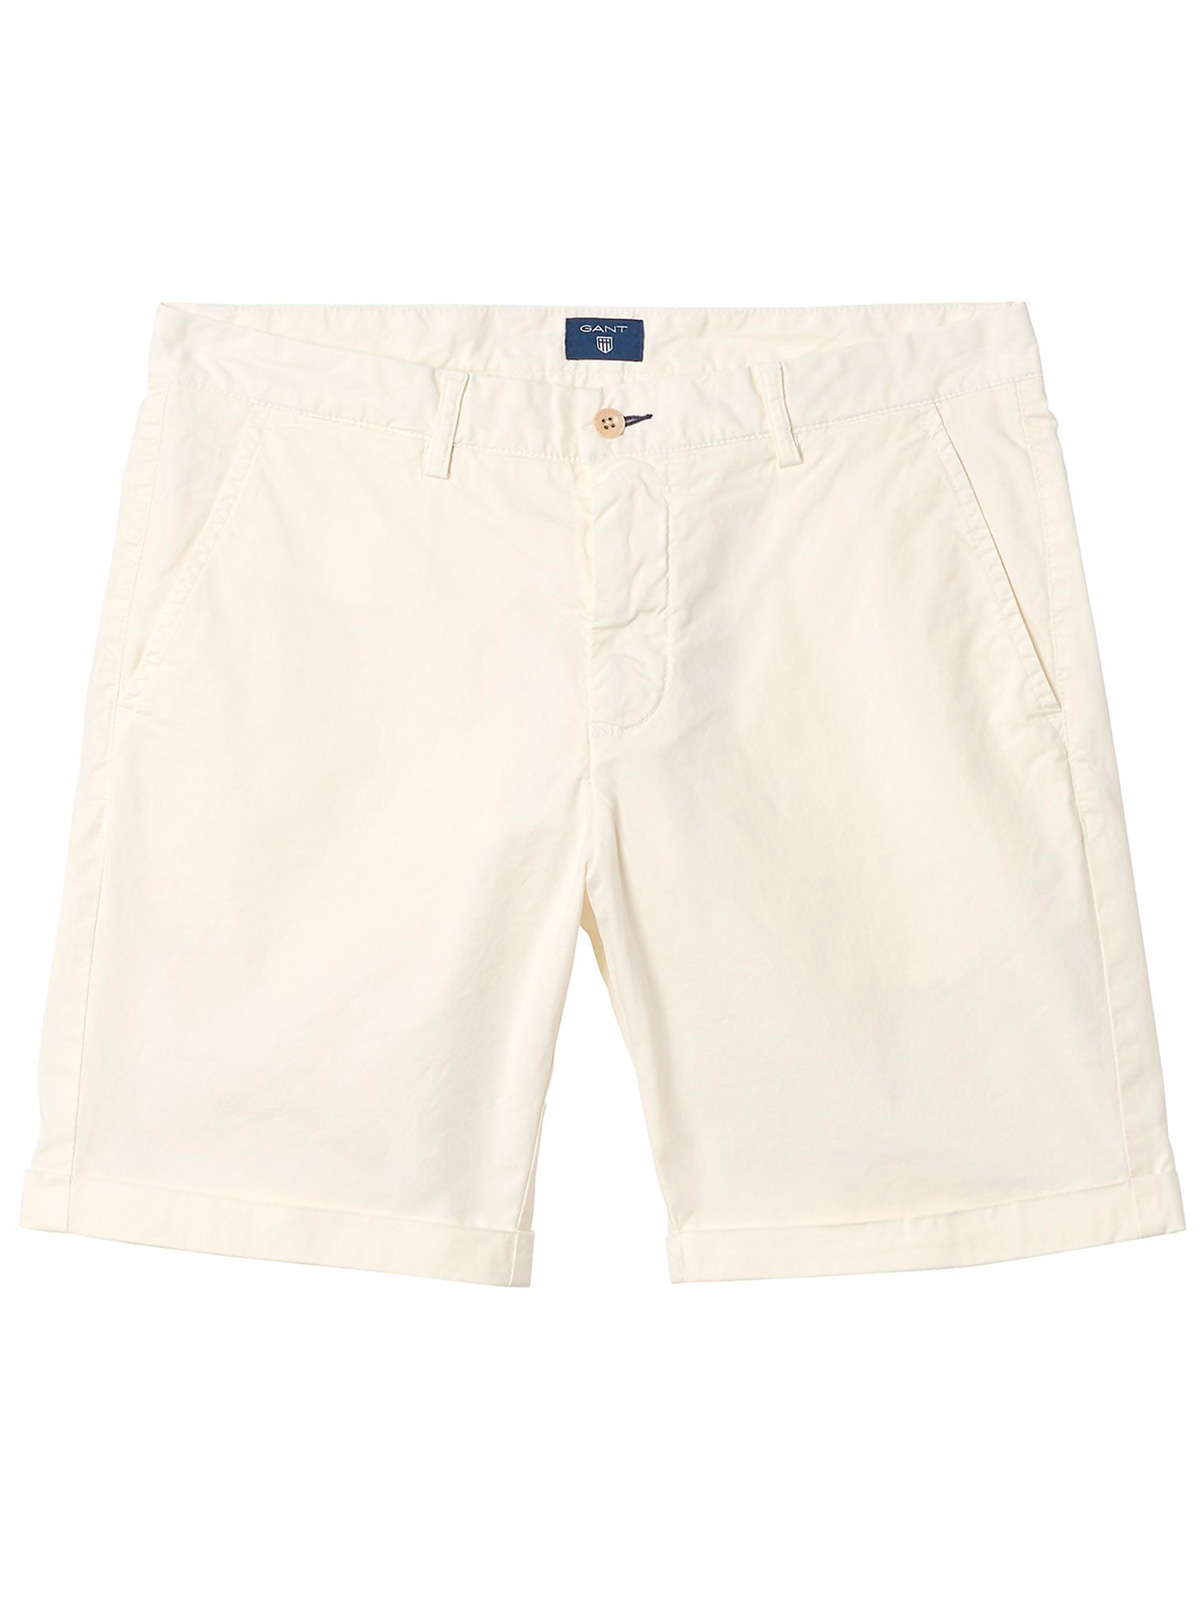 Picture of GANT | Men's Sunbleached Shorts